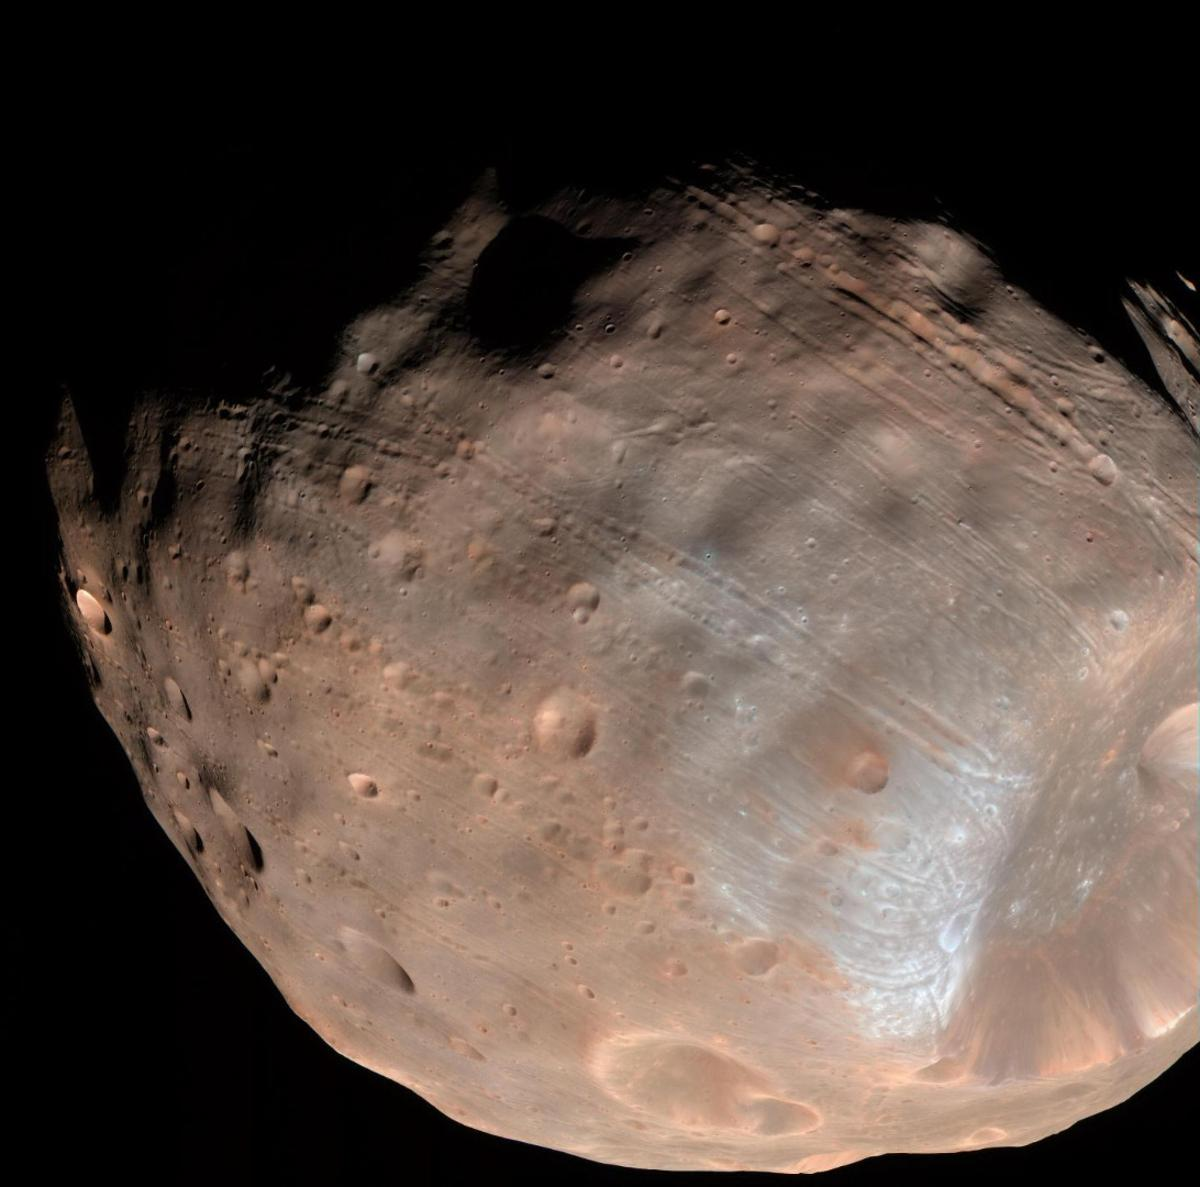 Could rolling stones be responsible for the grooves in Phobos' surface?